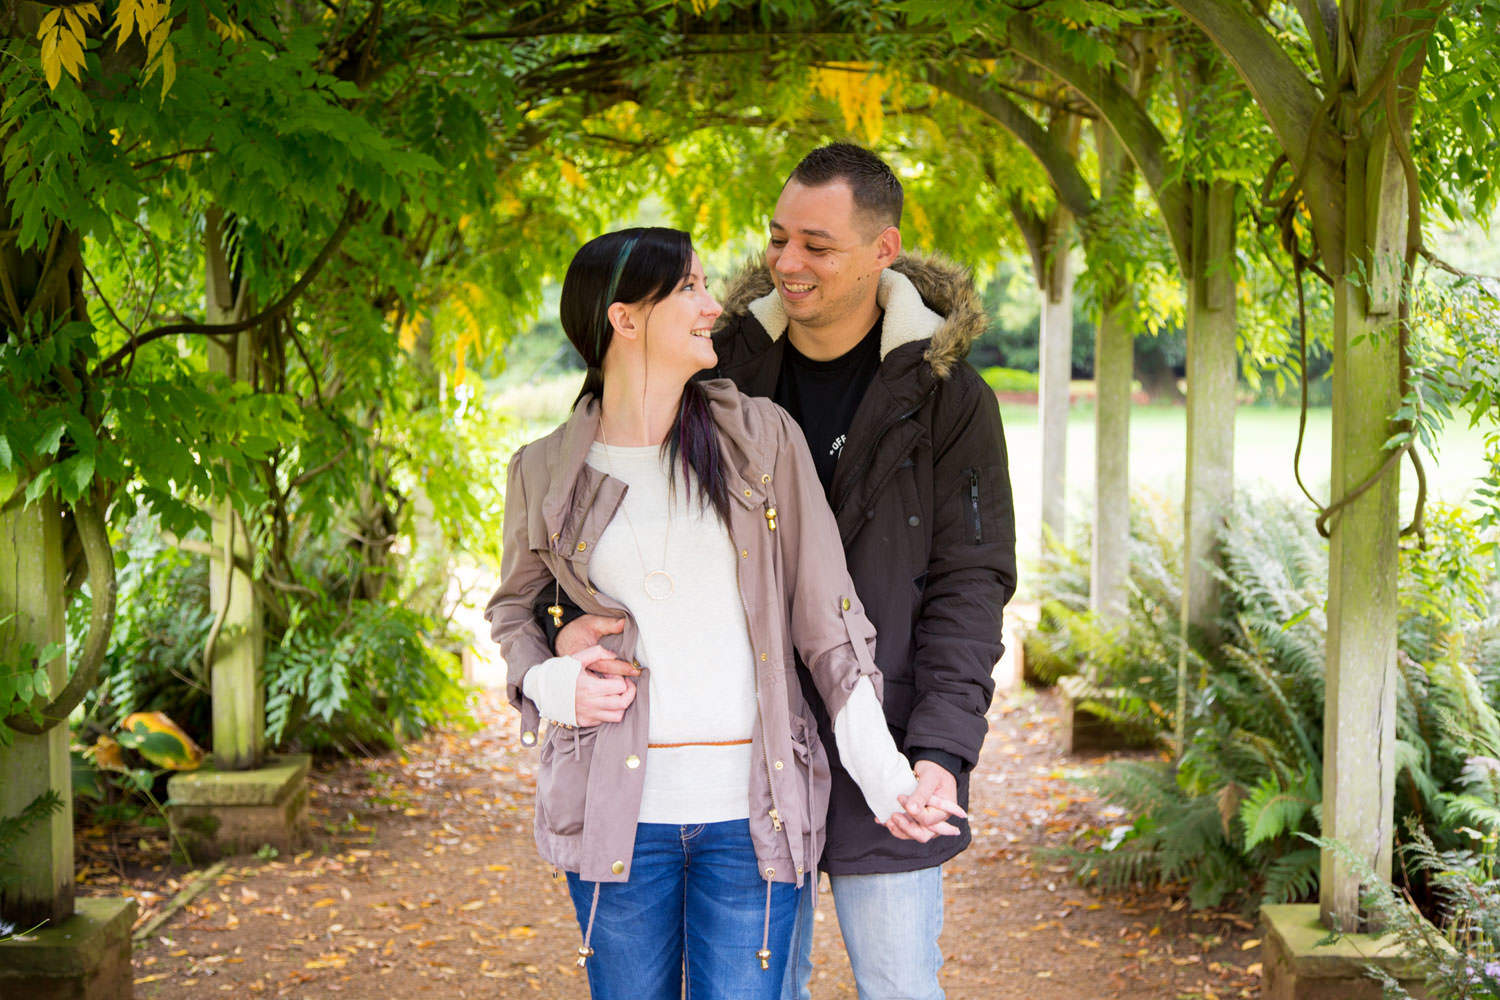 17-Hylands House couples session by Marc Godfree Photography